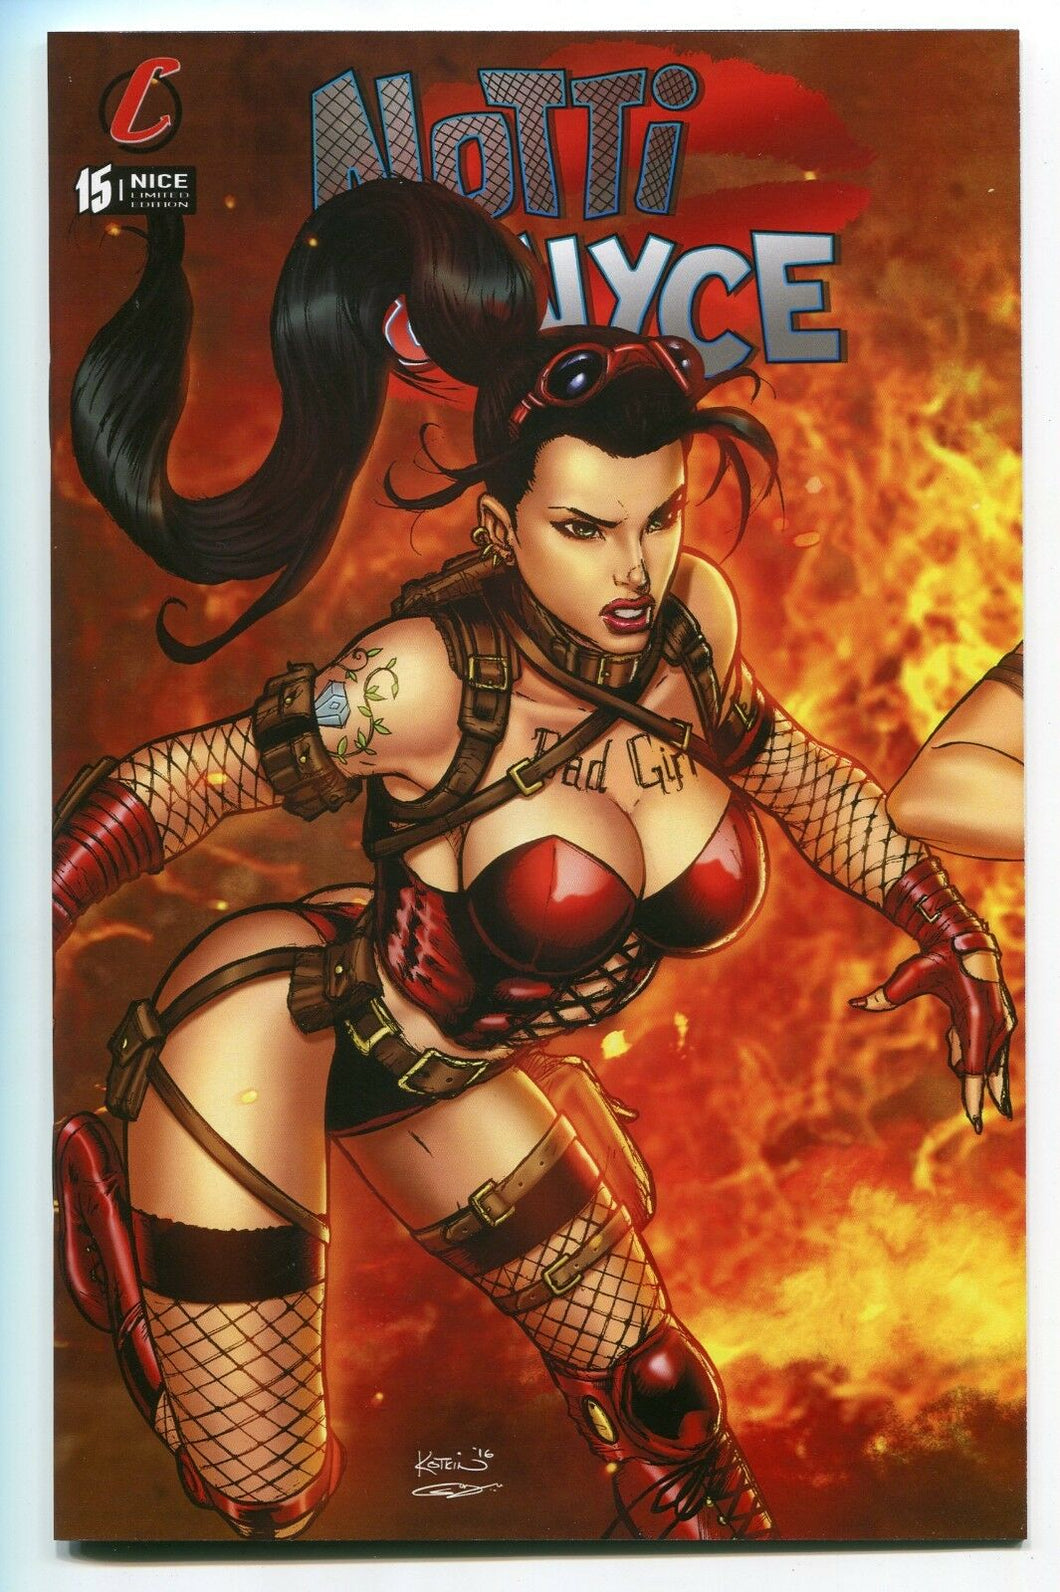 Notti & Nyce #15 A NICE Variant Cover by Alex Kotkin Counterpoint Entertainment